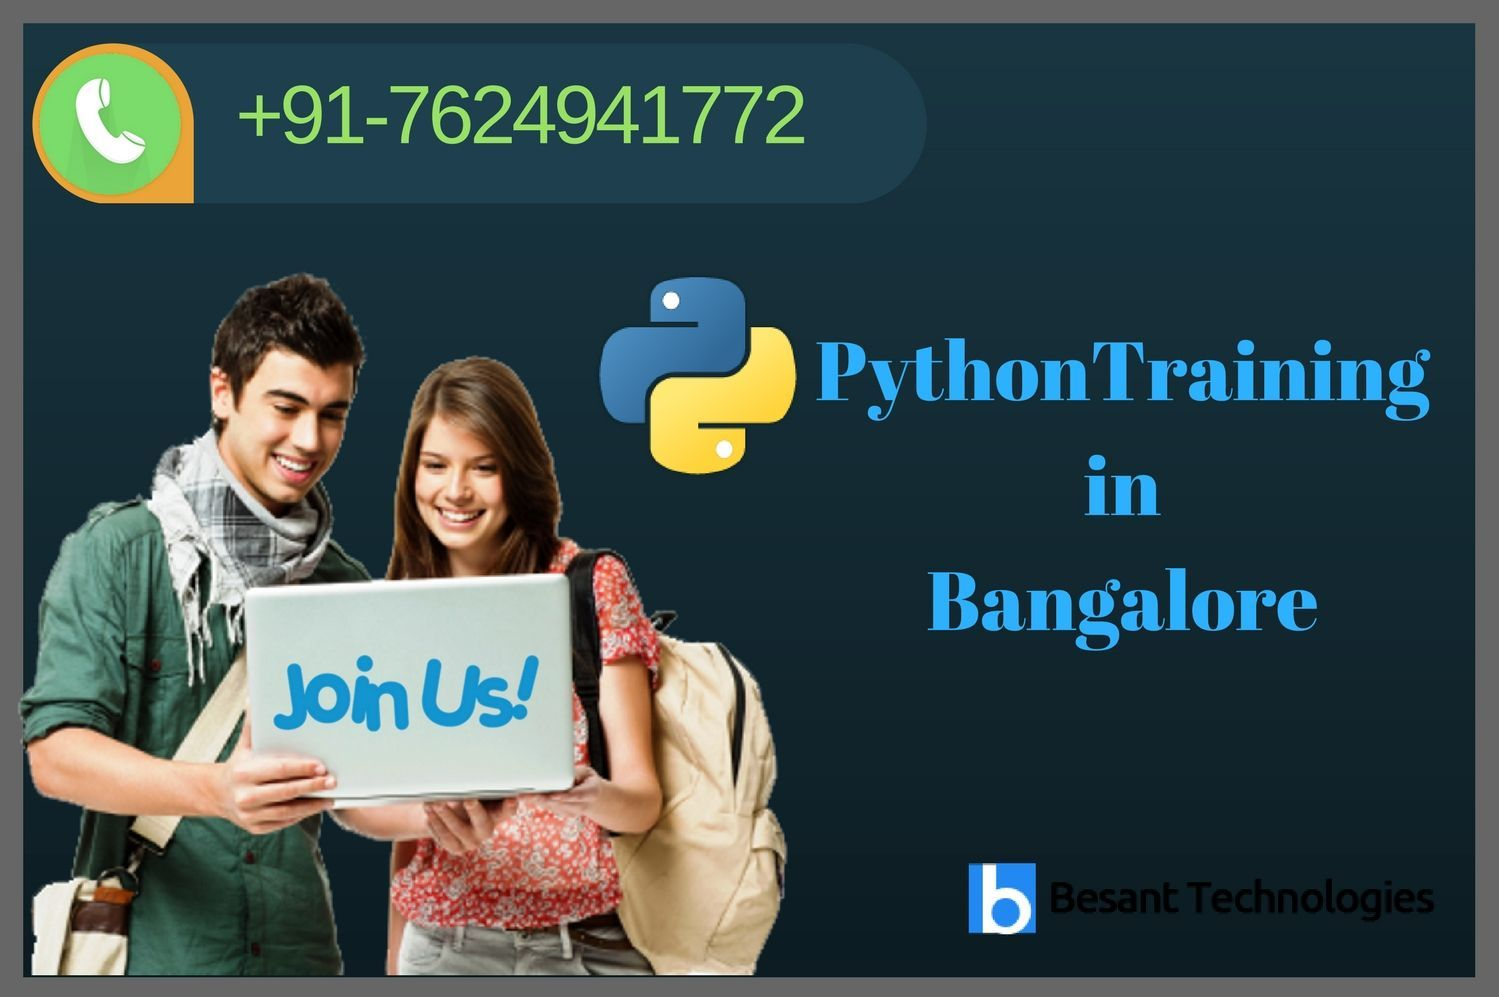 Besant Technologies offers Best Python Training in